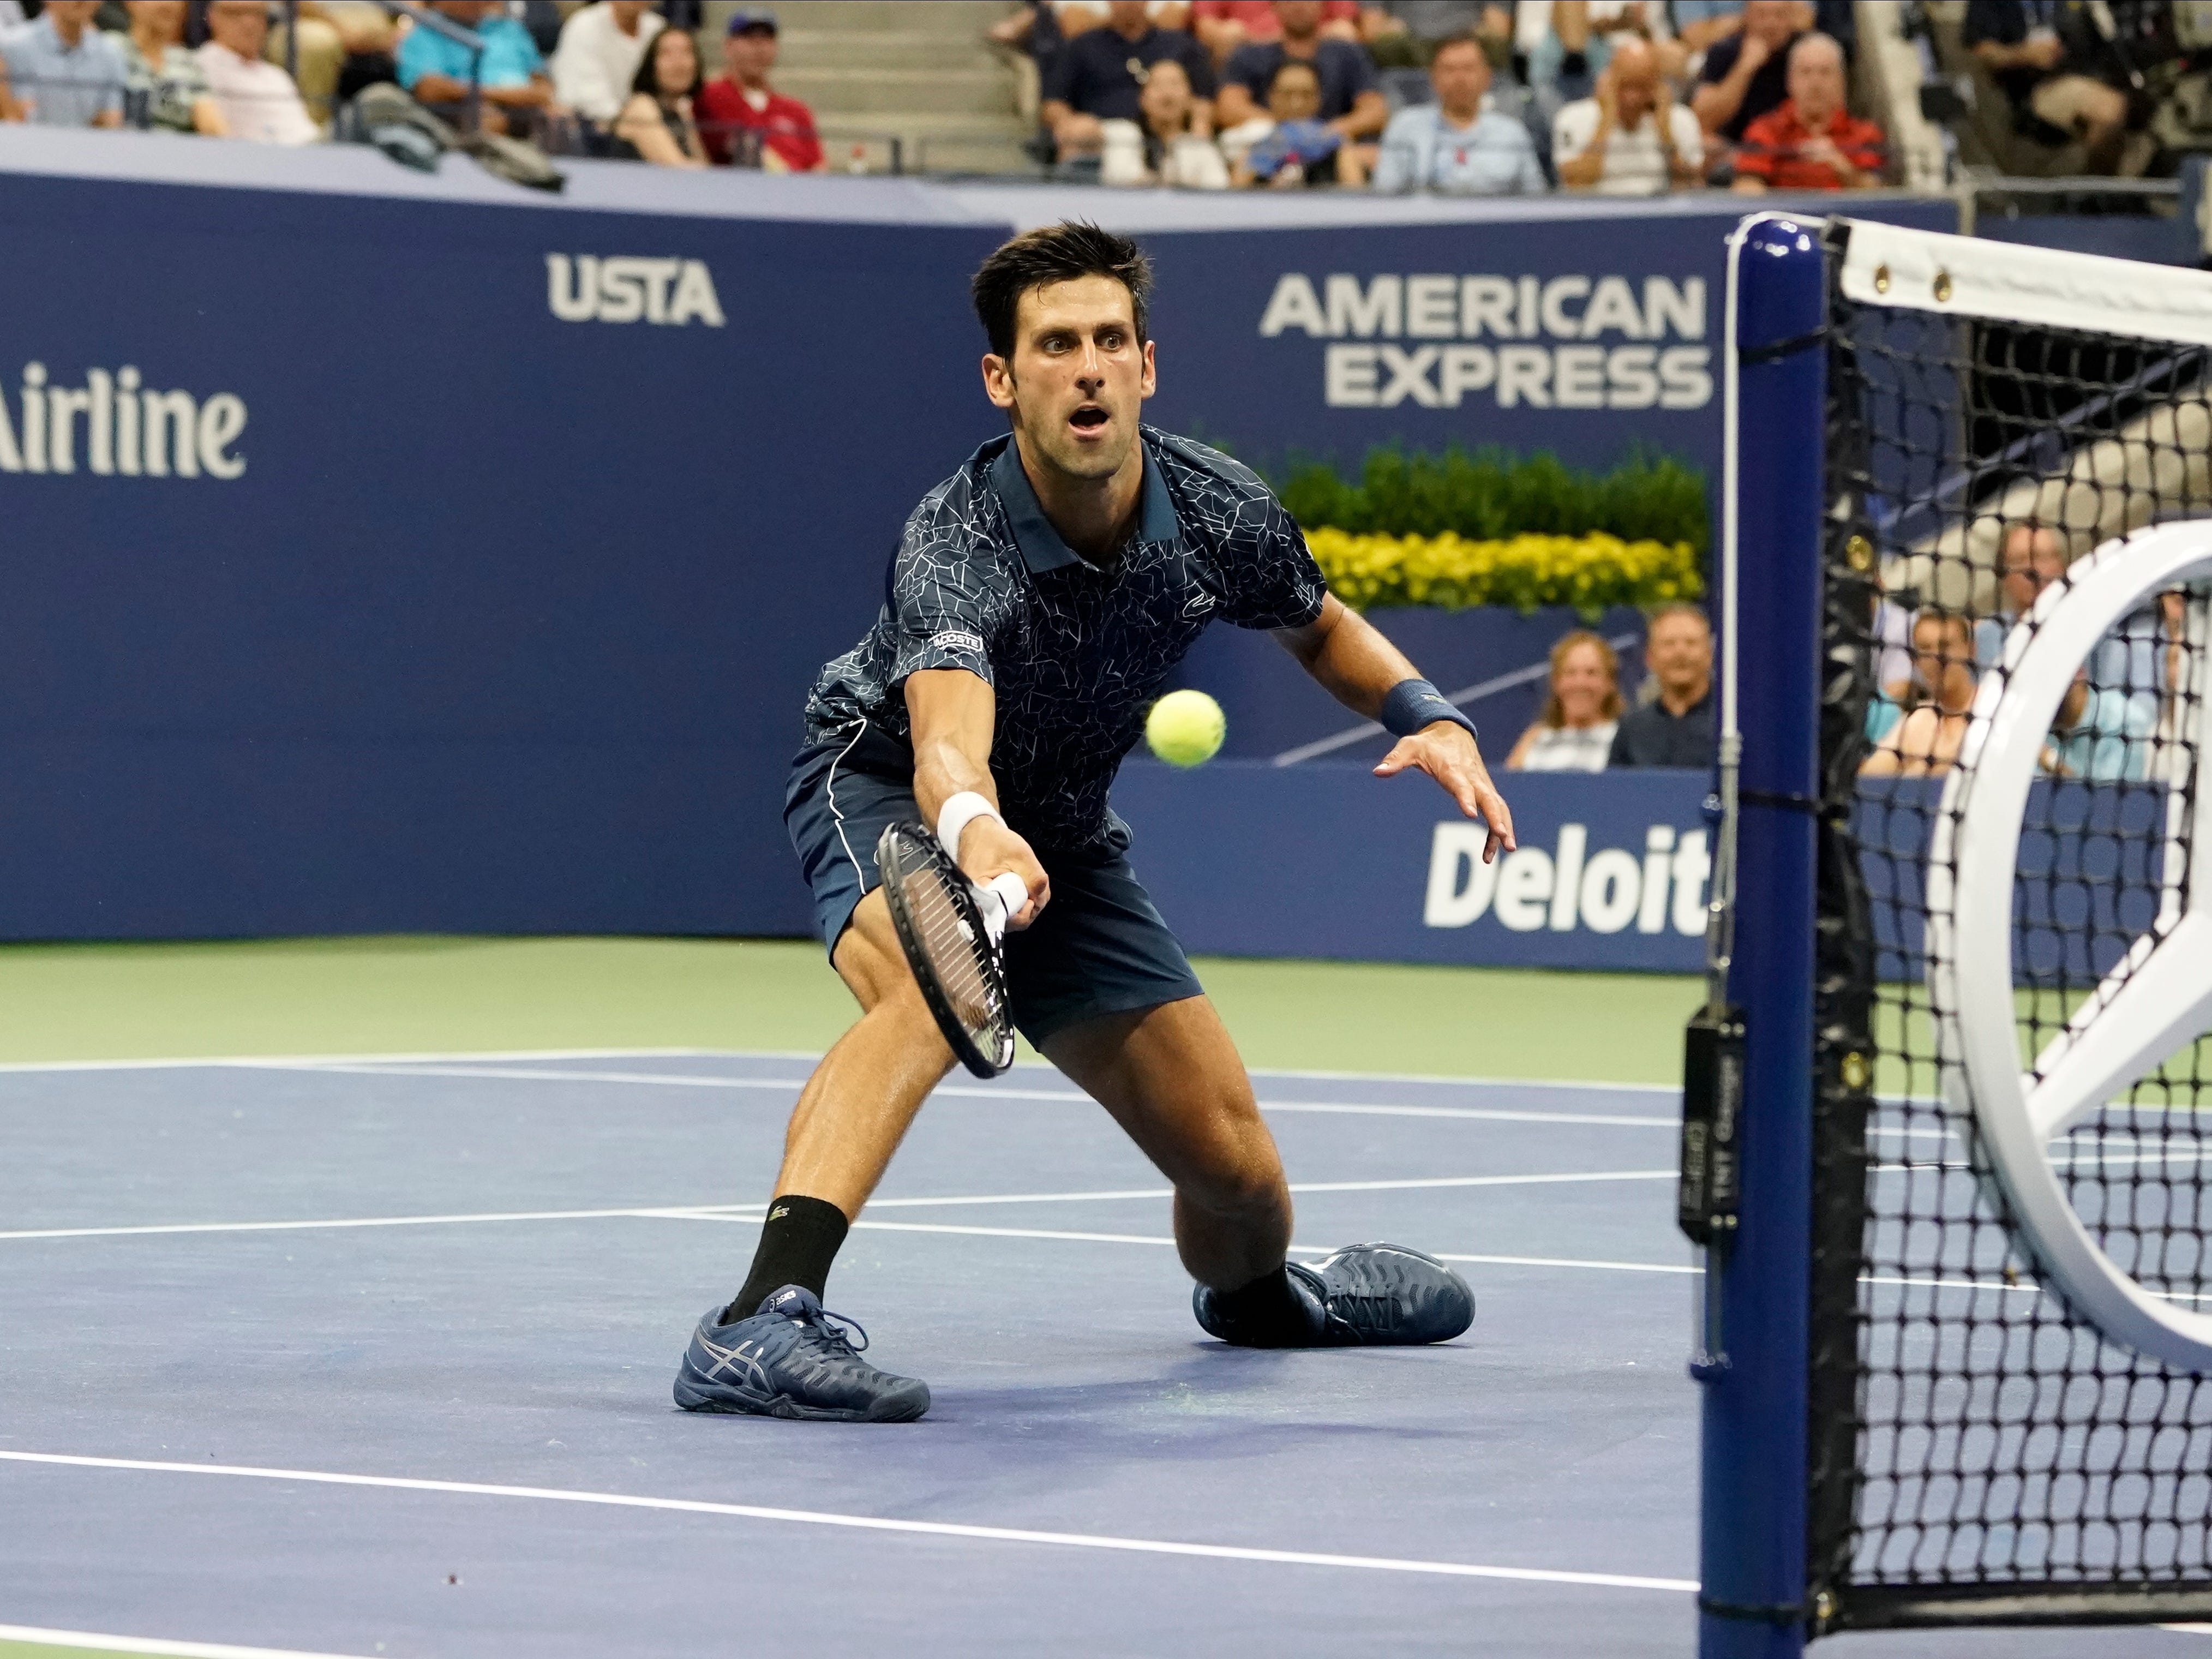 Novak Djokovic of Serbia chases one down at the net during his  6-1, 6-3, 6-7(2), 6-2 win against Tennys Sandgren of the USA.